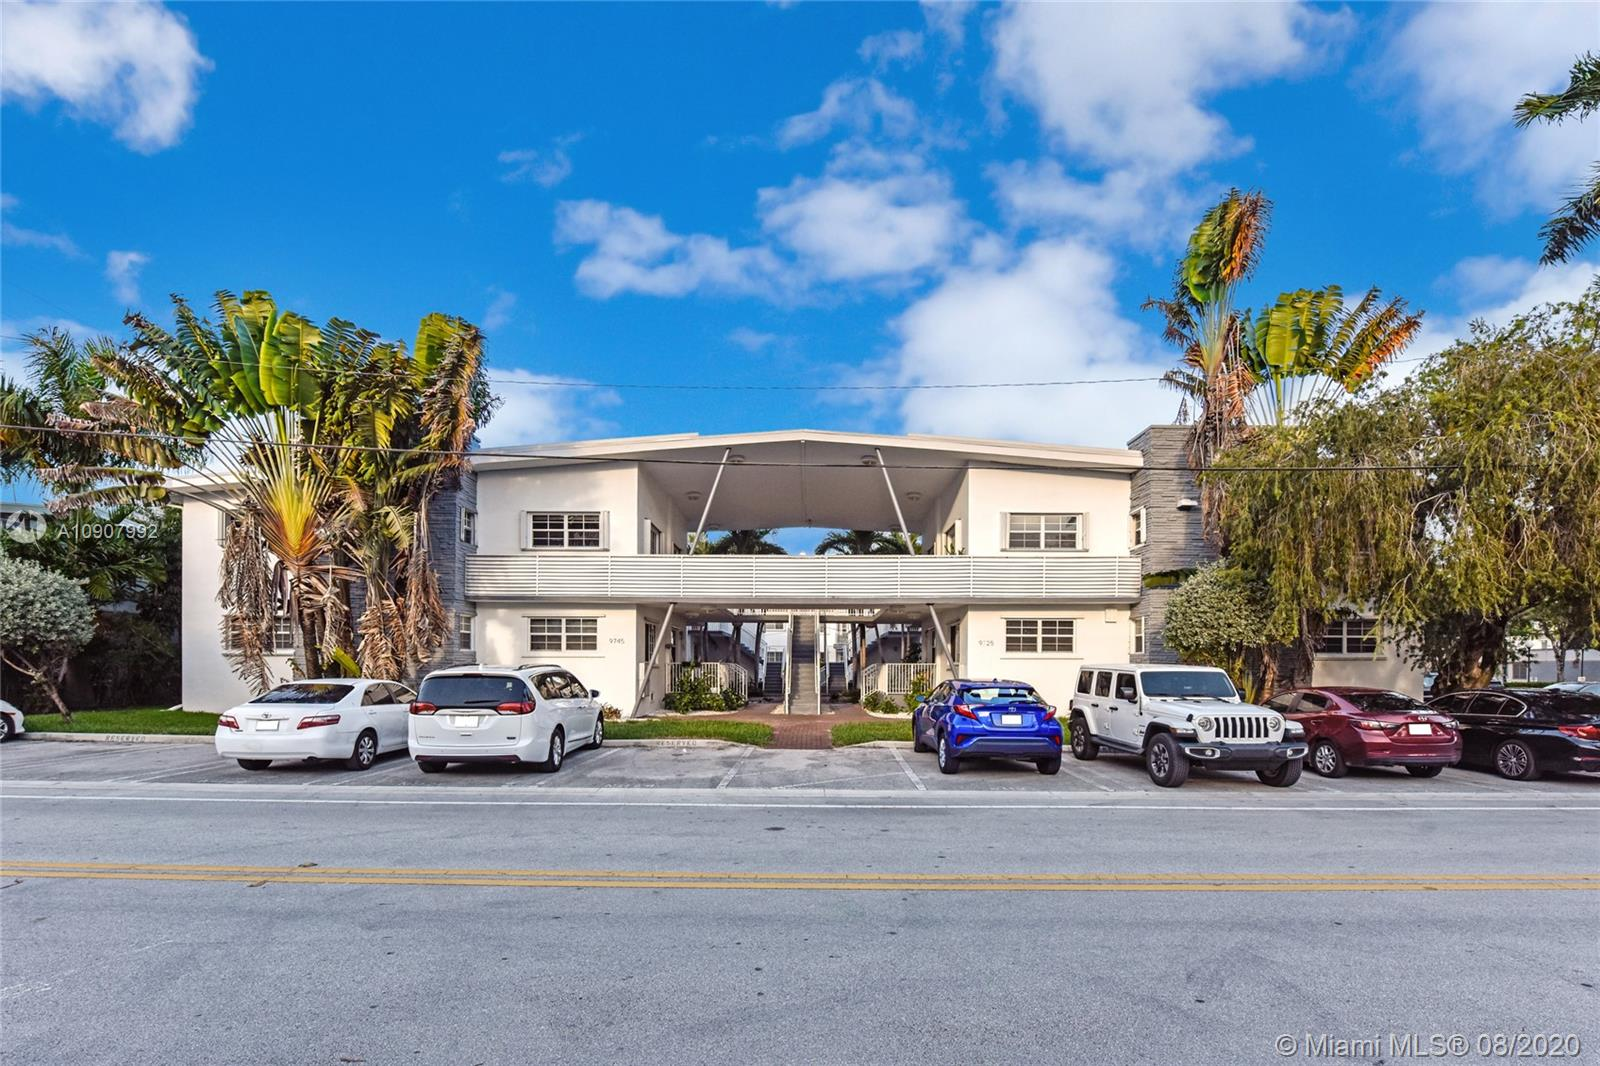 Lovely 3 bedroom, 2 bathroom condo in the beautiful Bay Harbor Islands of Miami. Located in a charming community Northern Star Condominiums property offers a great layout. Split floor plan, nice kitchen with stainless steel appliances, spacious bedrooms, large living room, washer/dryer hookup, and along with other great features. Location doesn't get any better than this! Less than 5 minutes from Bal Harbour Shops and Beach! Also right by amazing restaurants, shops, markets, and more! Don't let this opportunity pass you by!